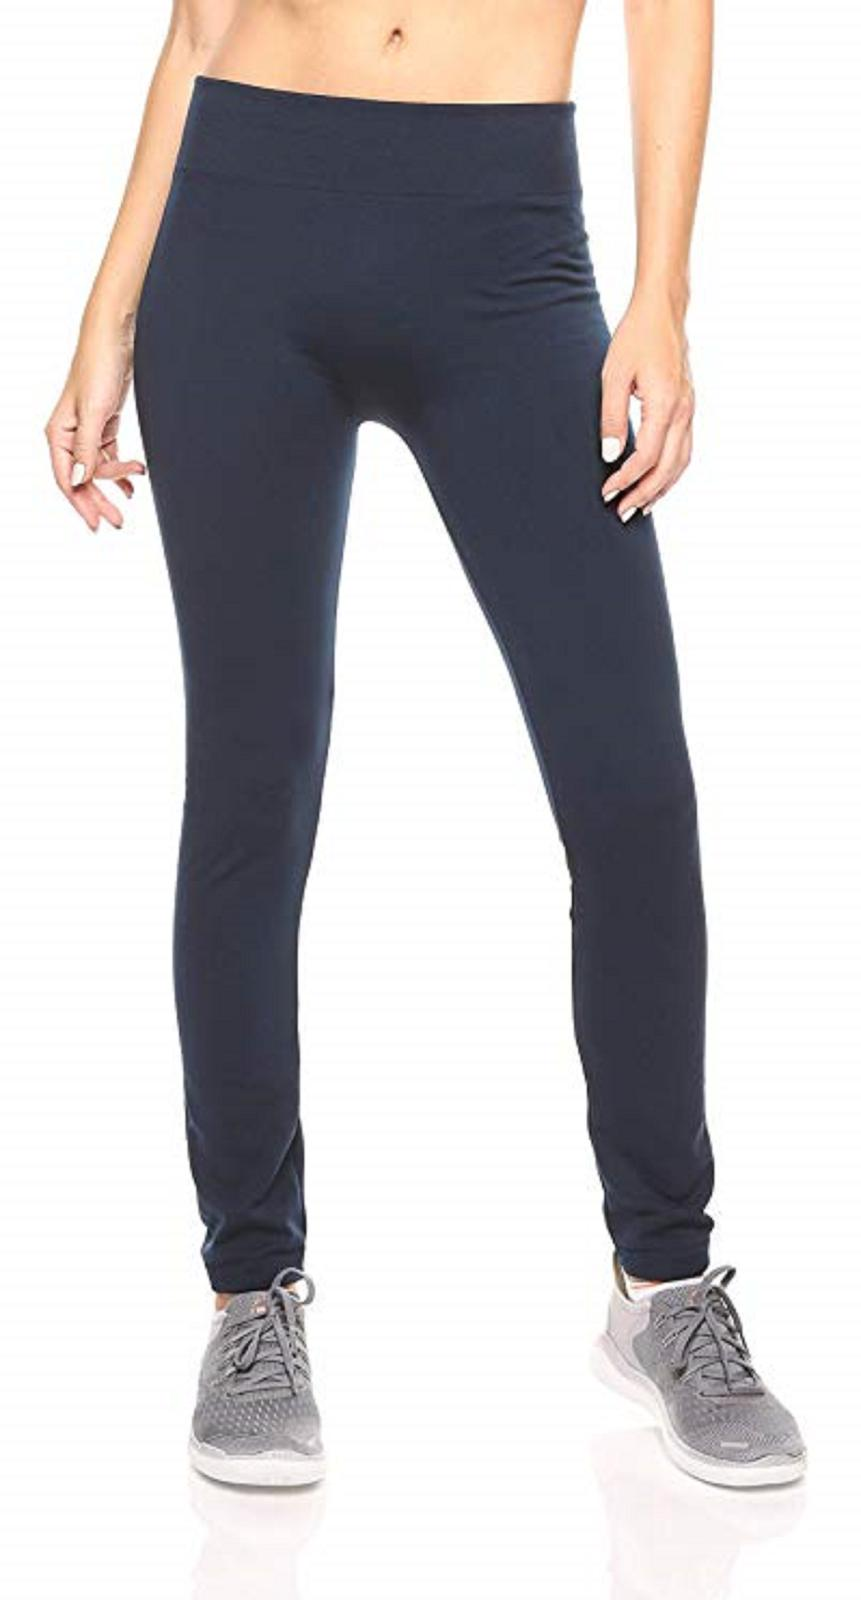 6 Lined Leggings Winter, Everyday One